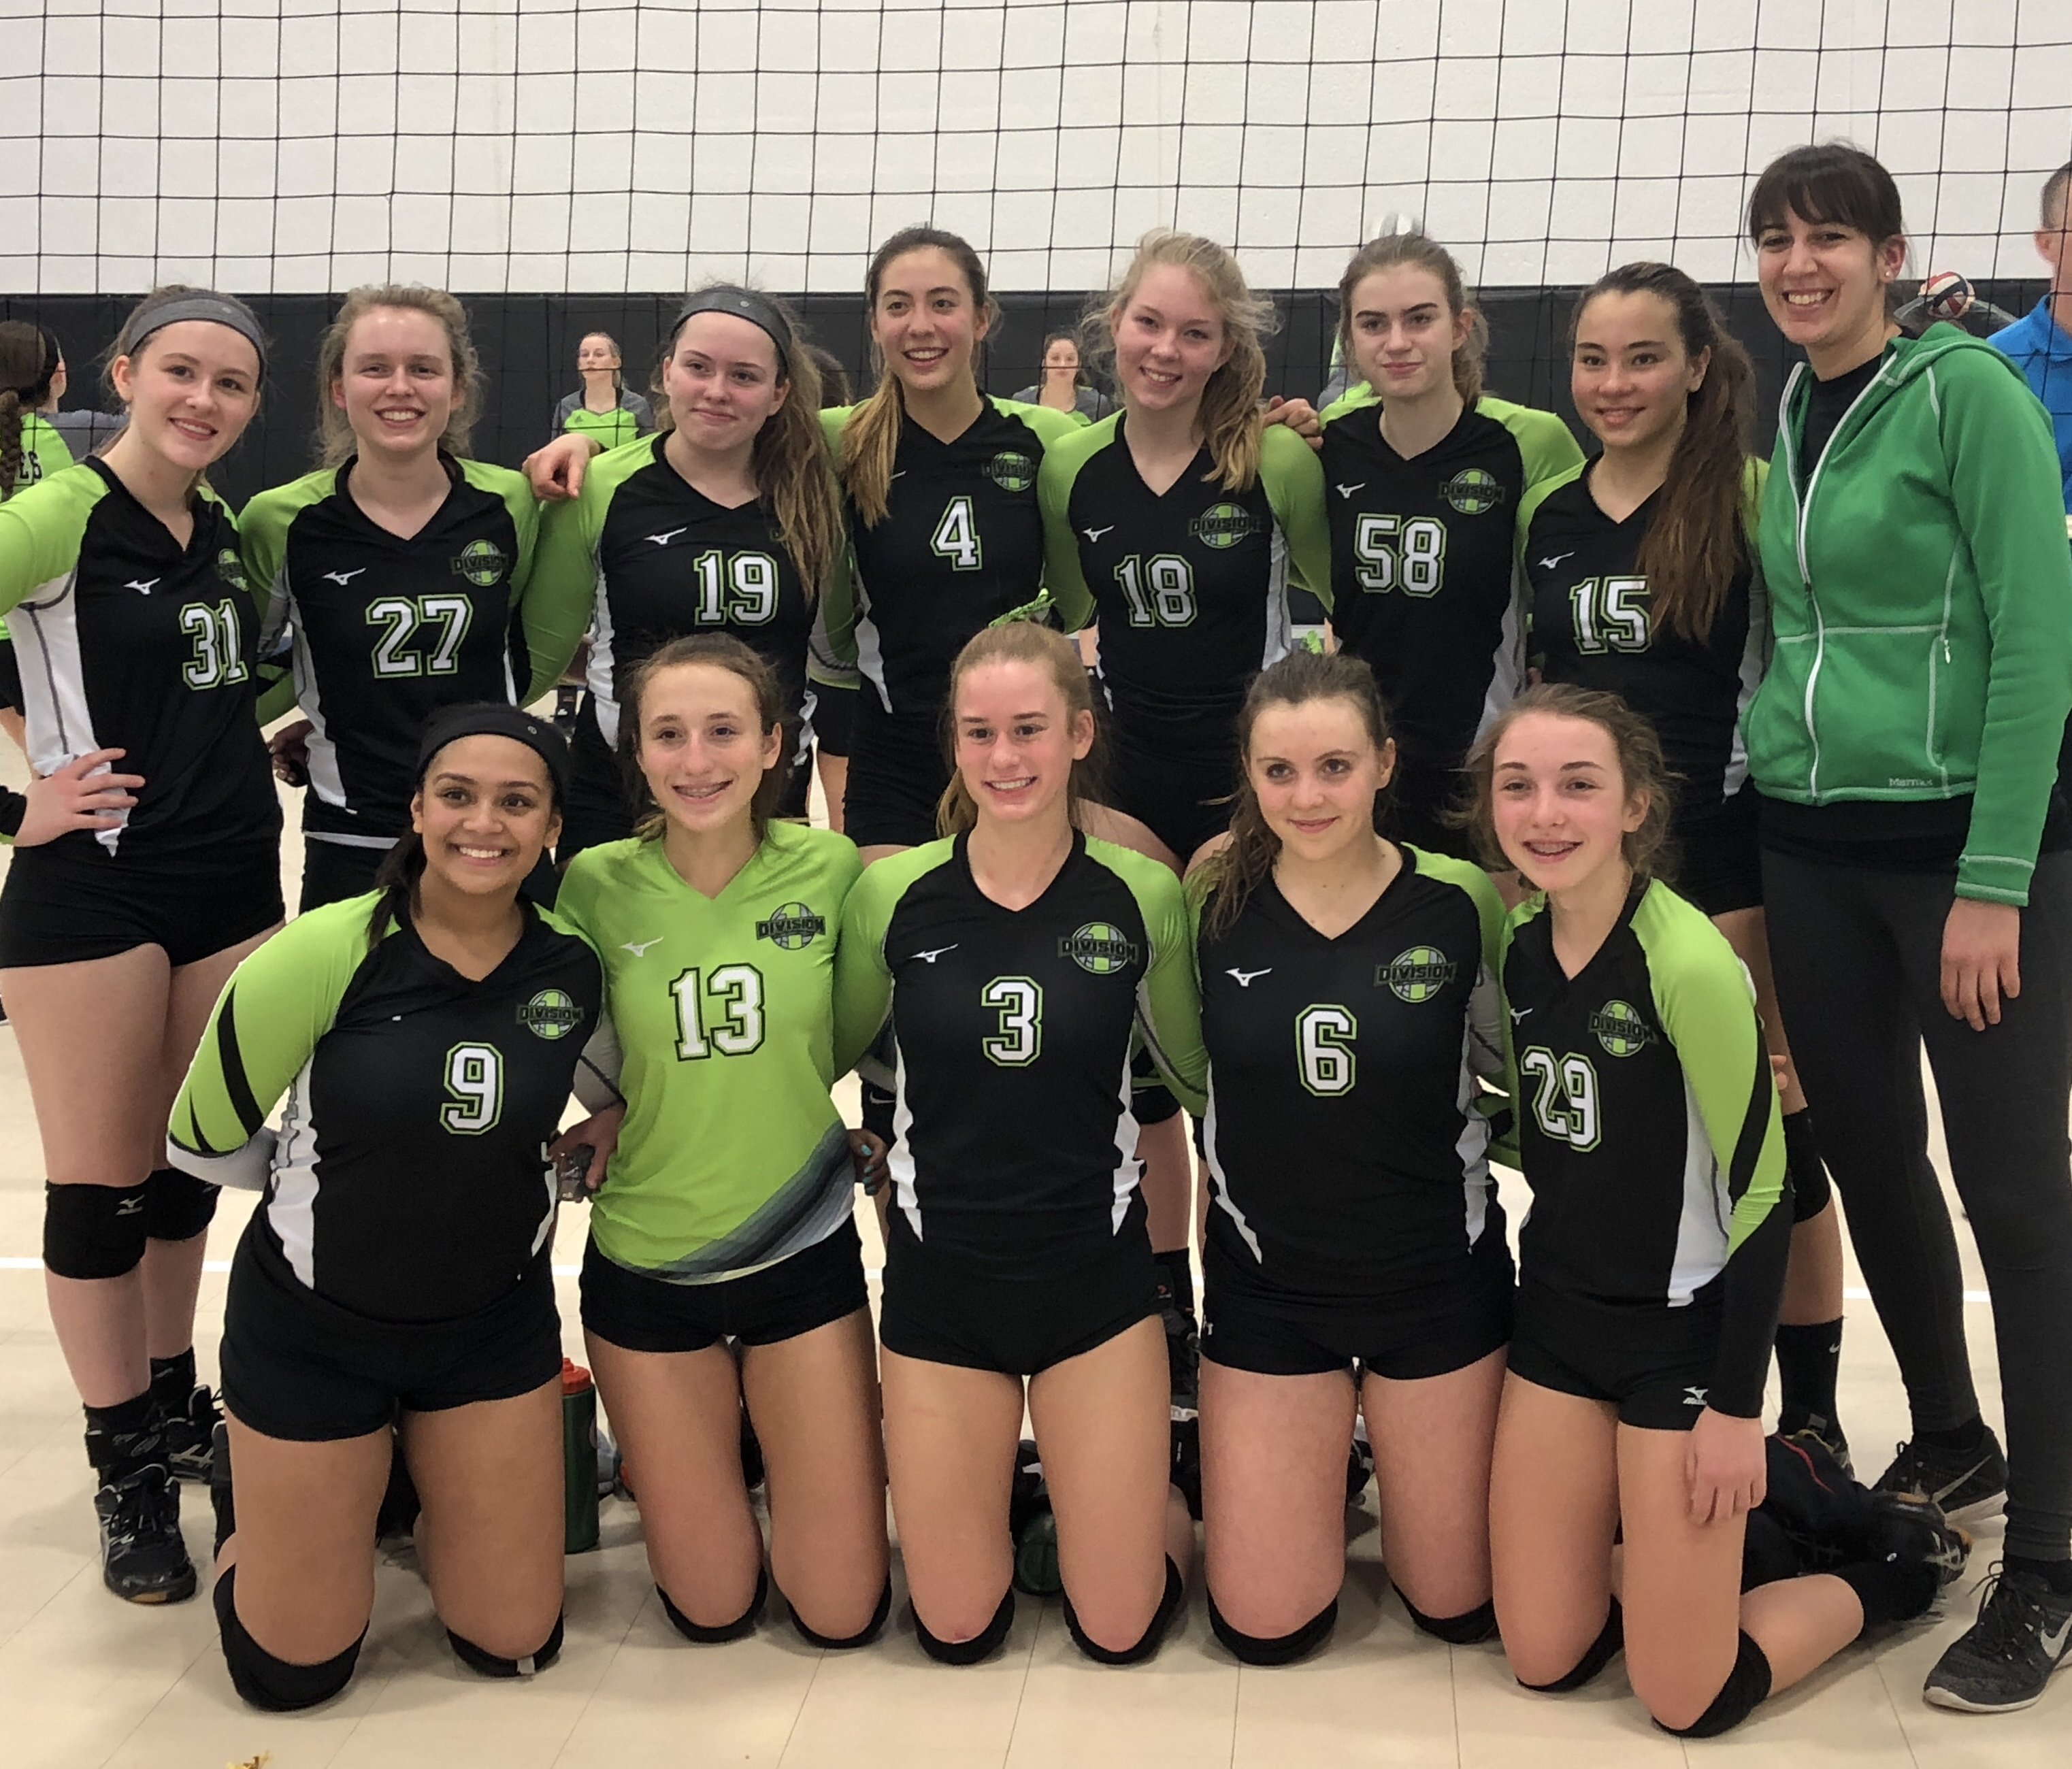 D1 Volleyball Club